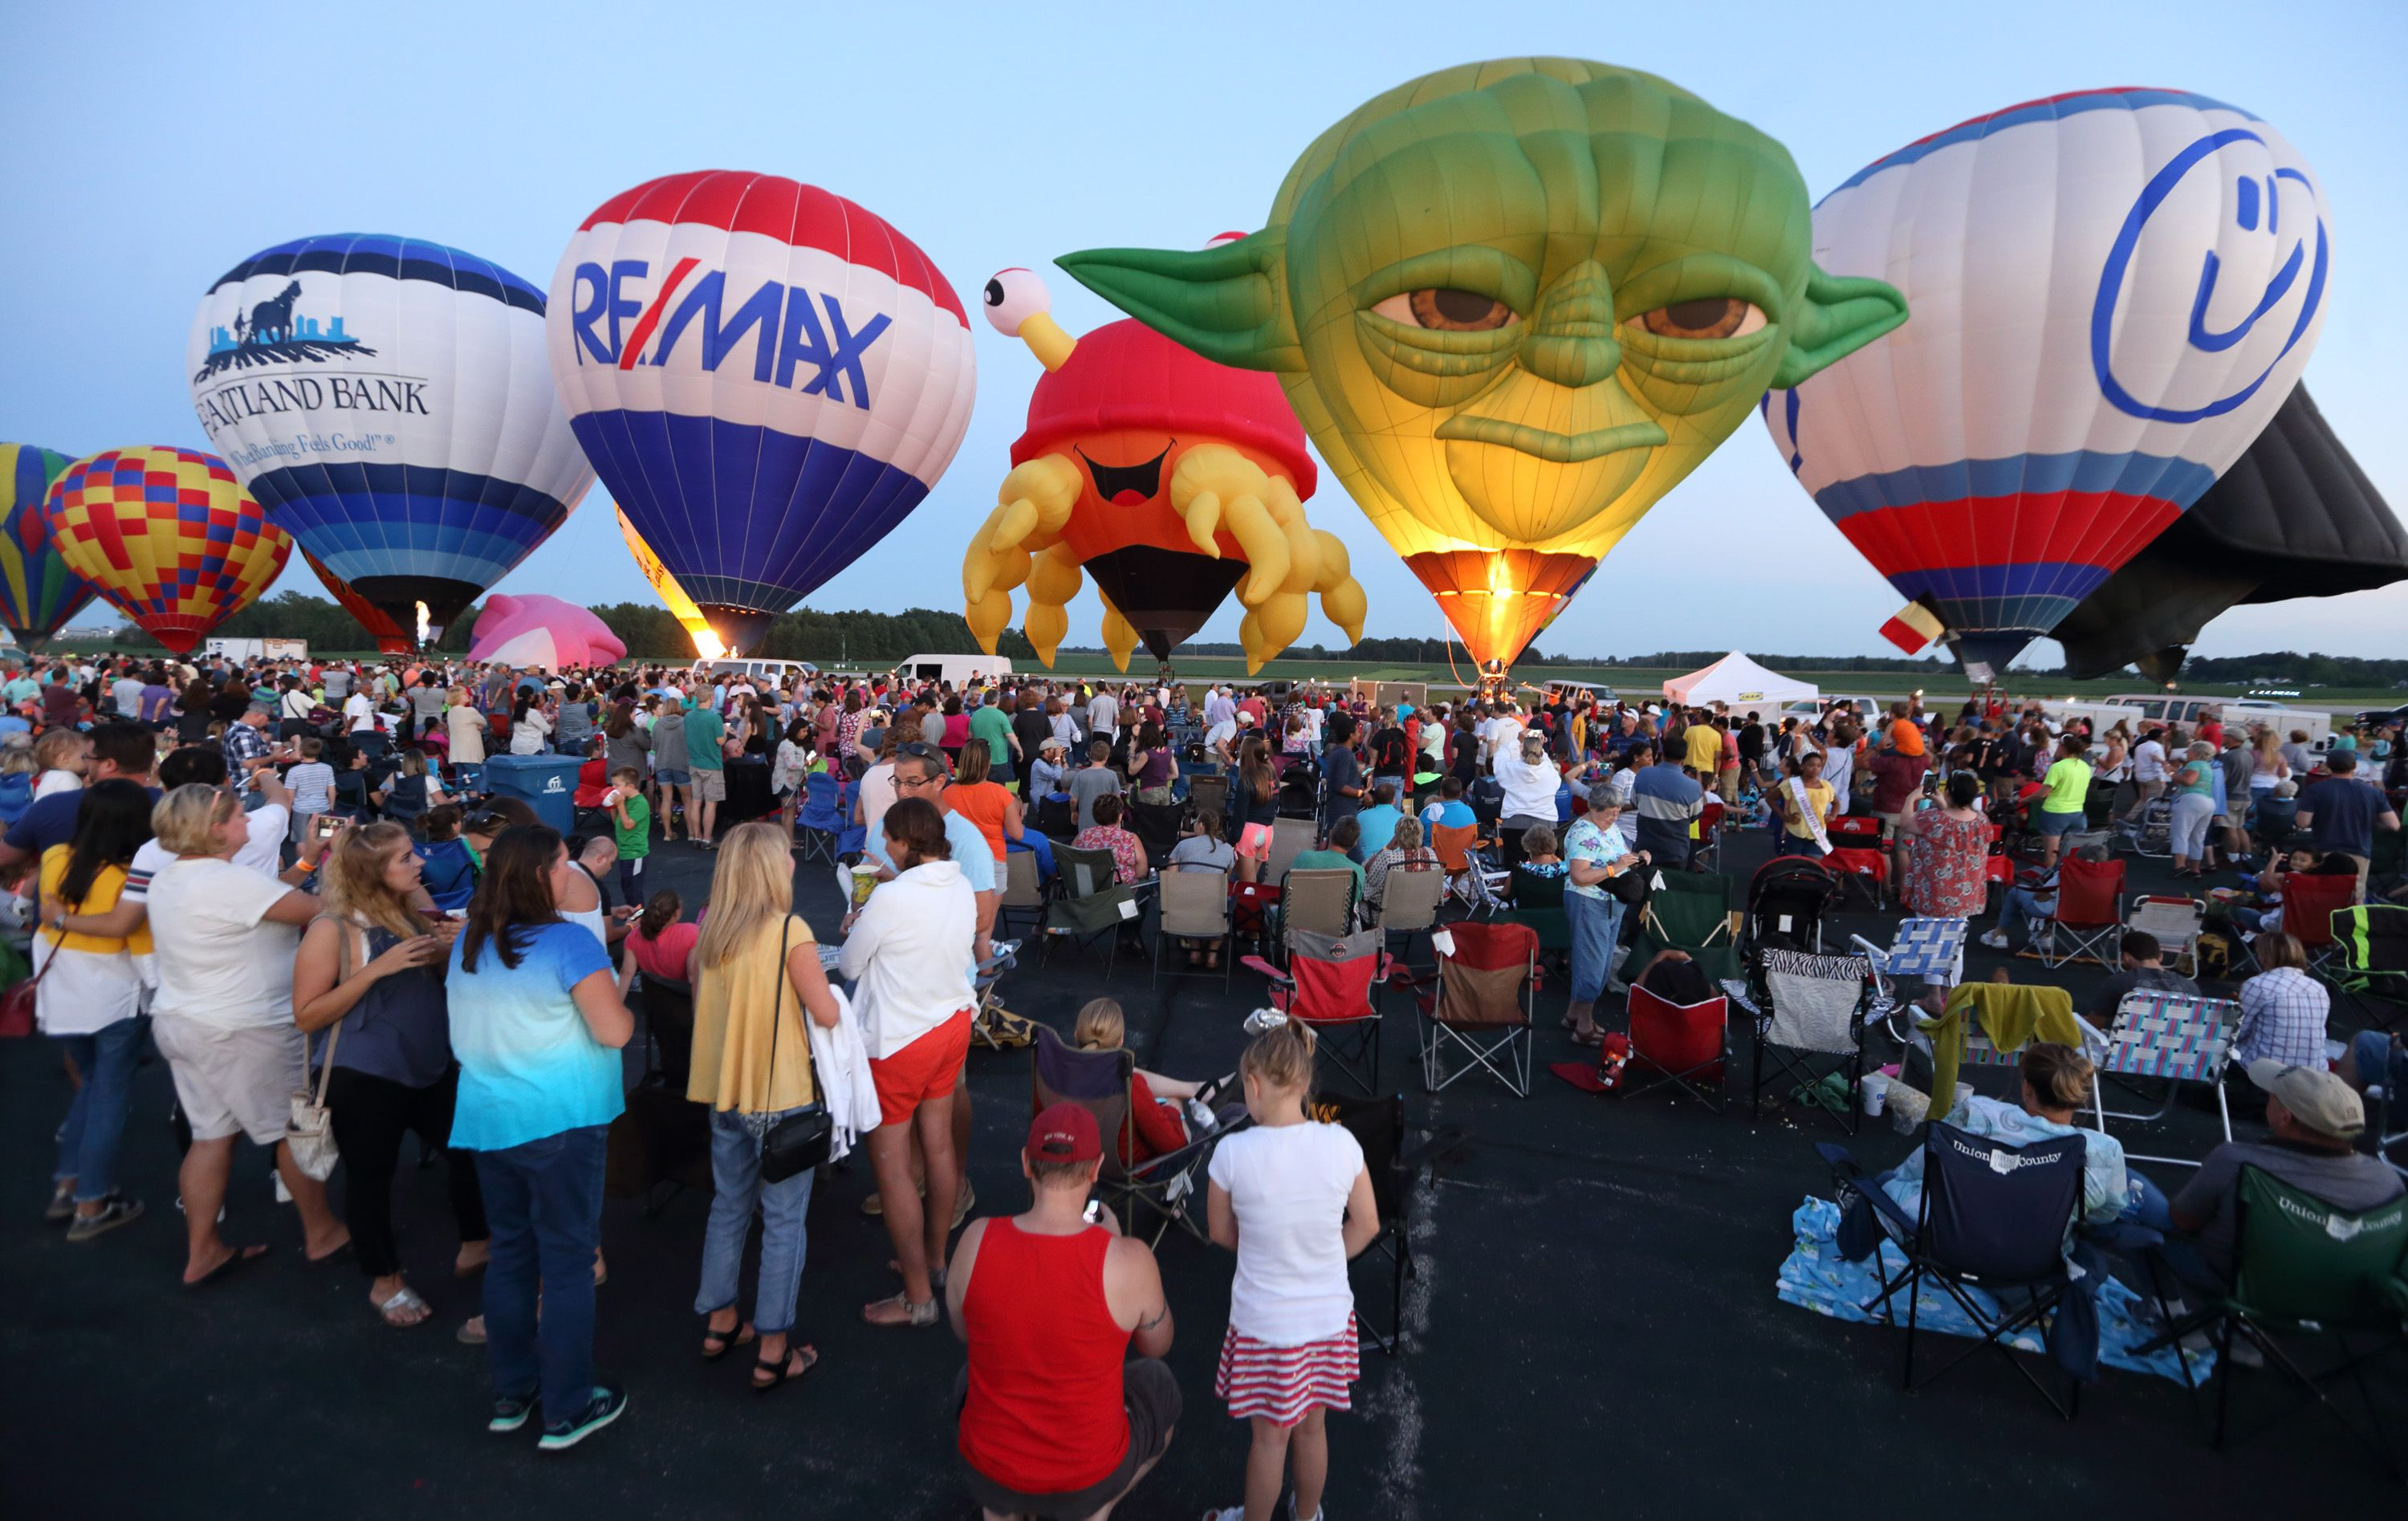 Spend The Day At This Hot Air Balloon Festival In Ohio For